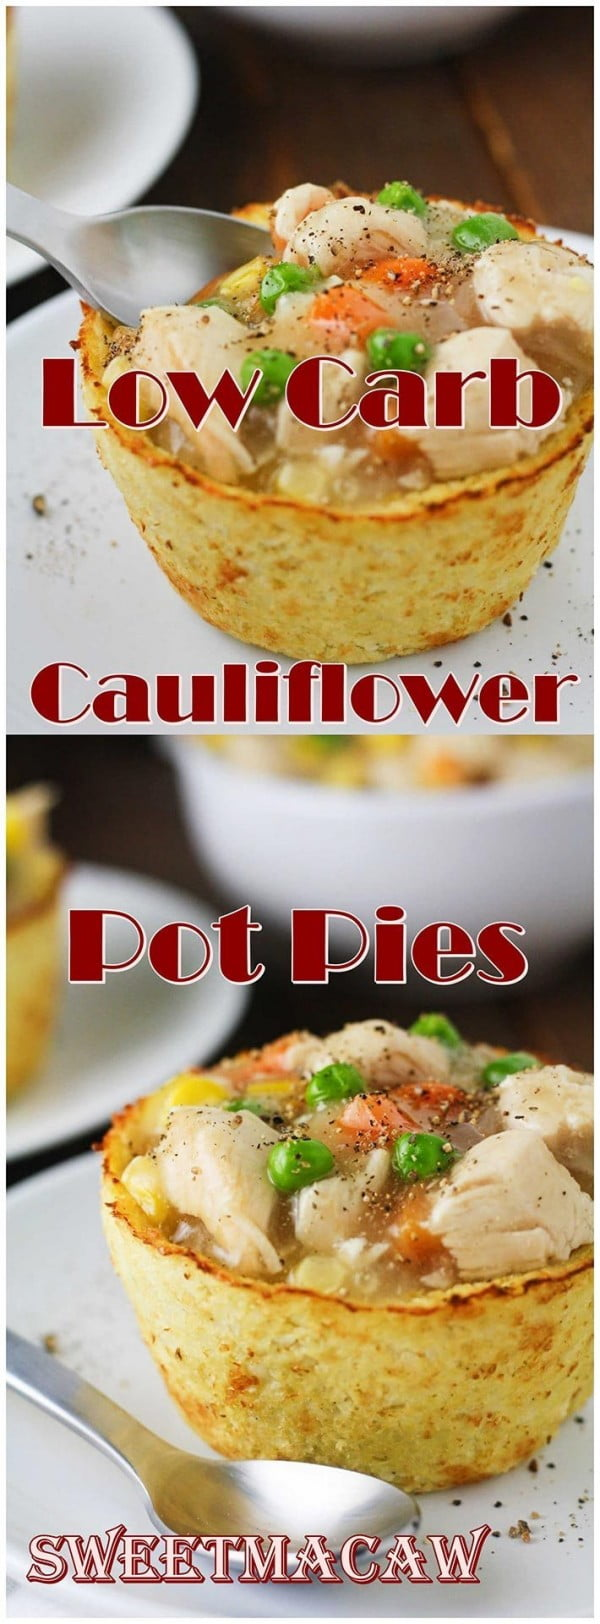 Low Carb Cauliflower Pot Pies #potpie #dinner #recipe #food